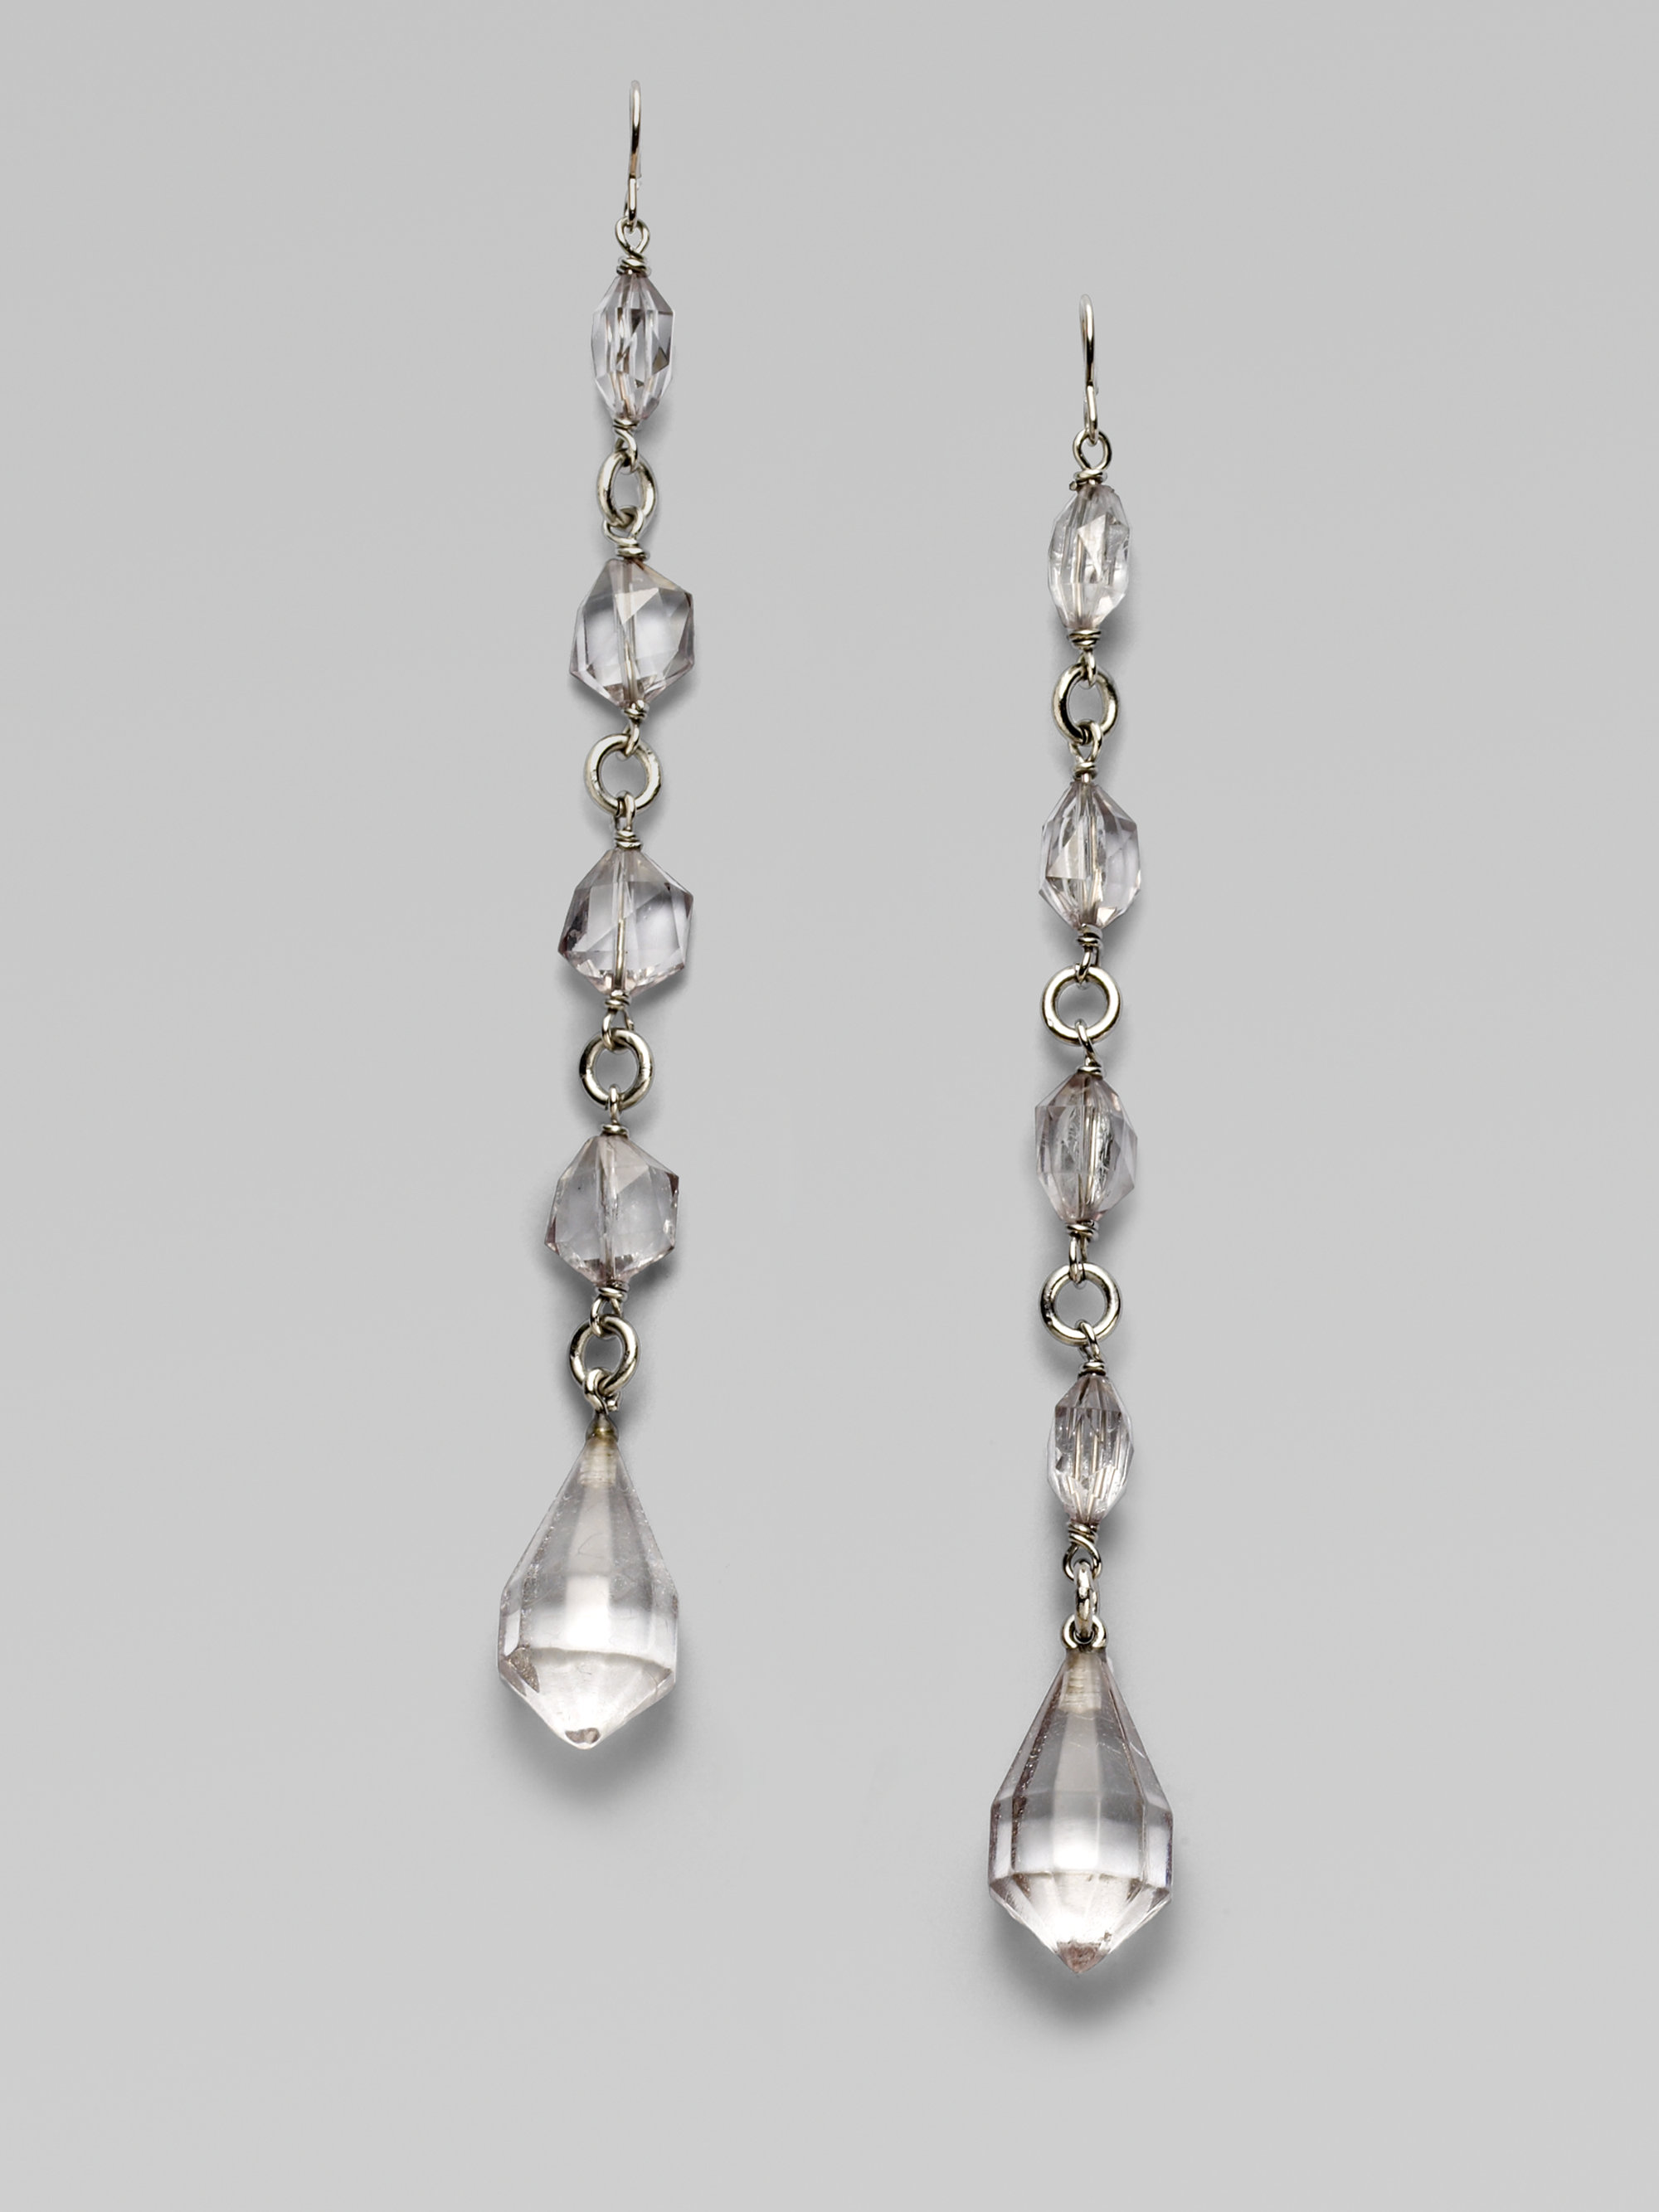 Lyst - Prada Plex Crystal Drop Earrings in Metallic 3dd255a961